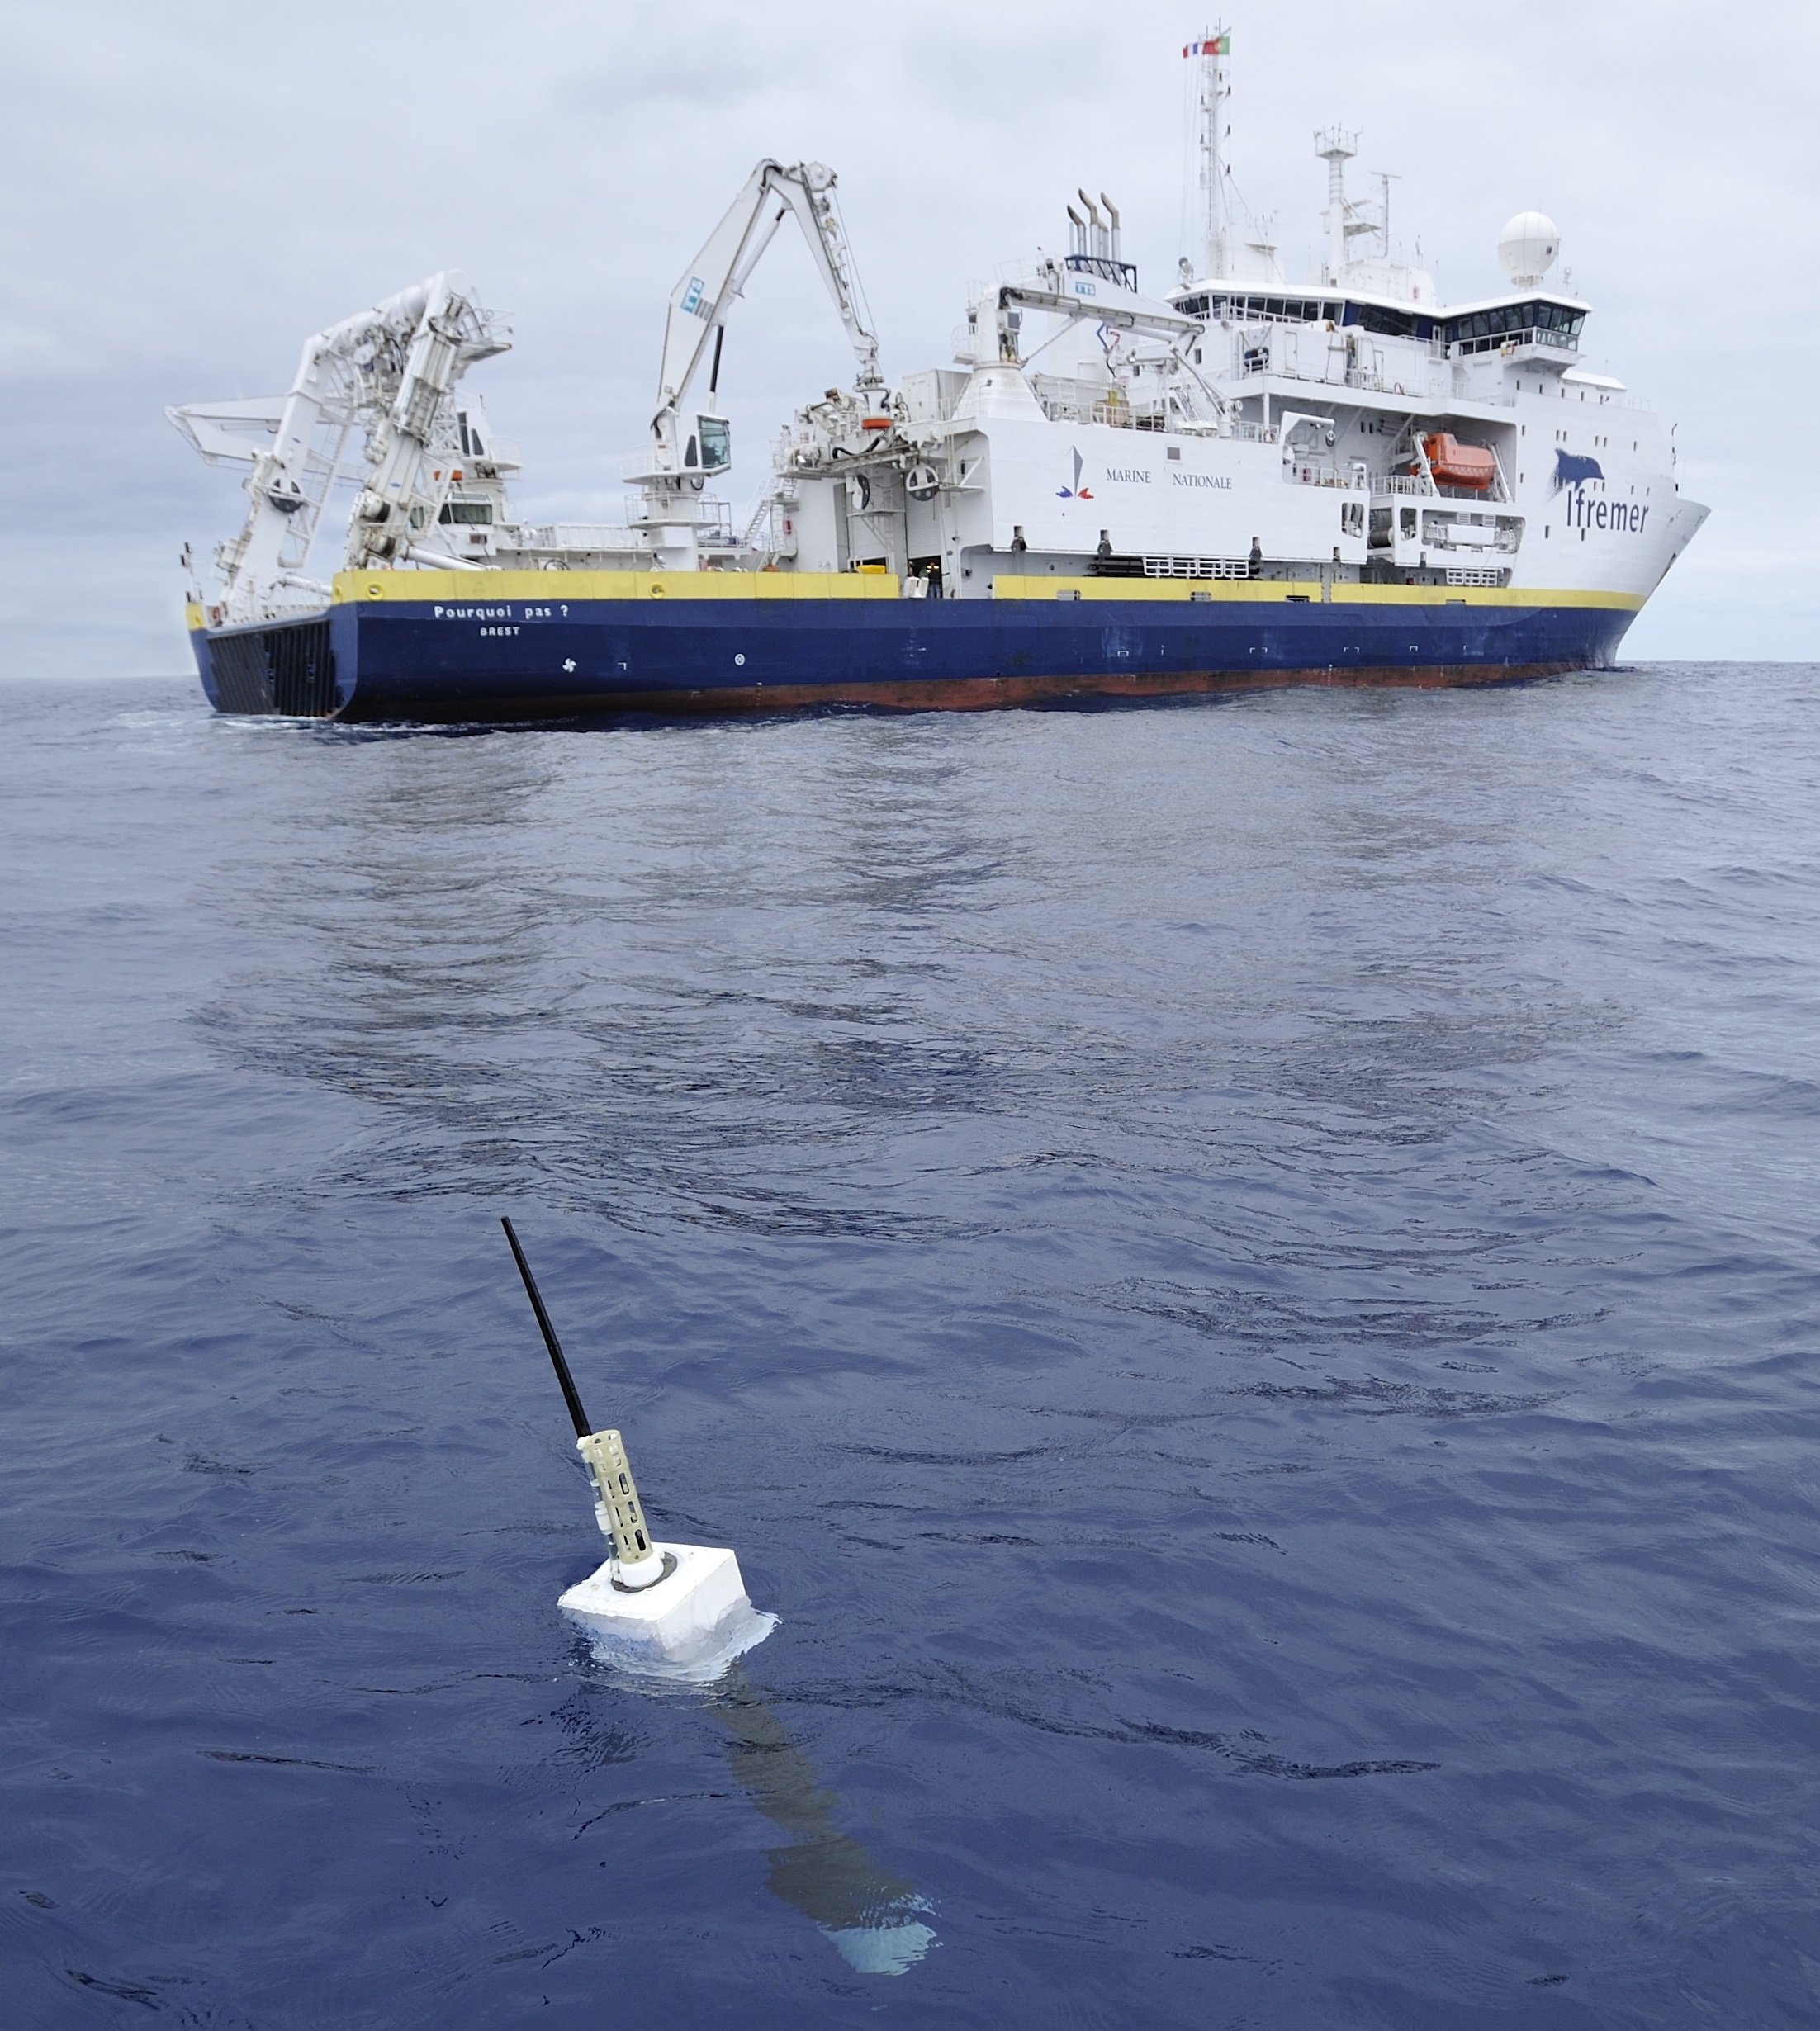 Indian pacific oceans temporarily hide global warming nasa the new study used ocean temperature measurements from a global array of 3500 argo floats and sciox Gallery